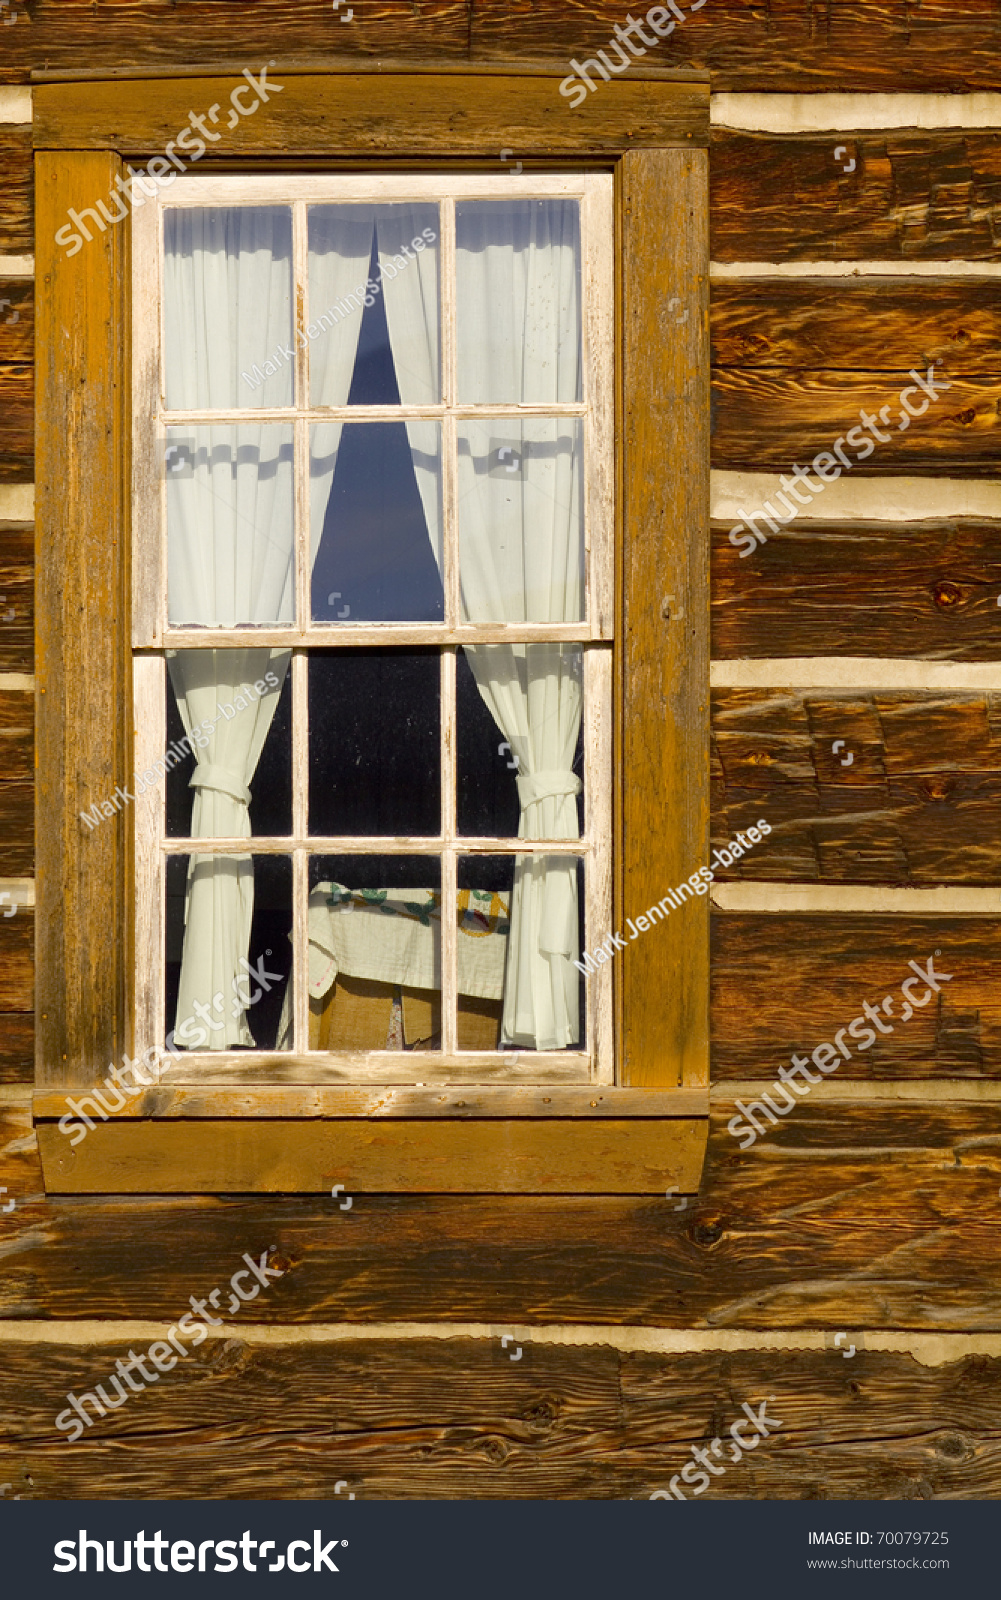 exceptional log cabin window #3: Portrait of old log cabin window with square log detail and chinking